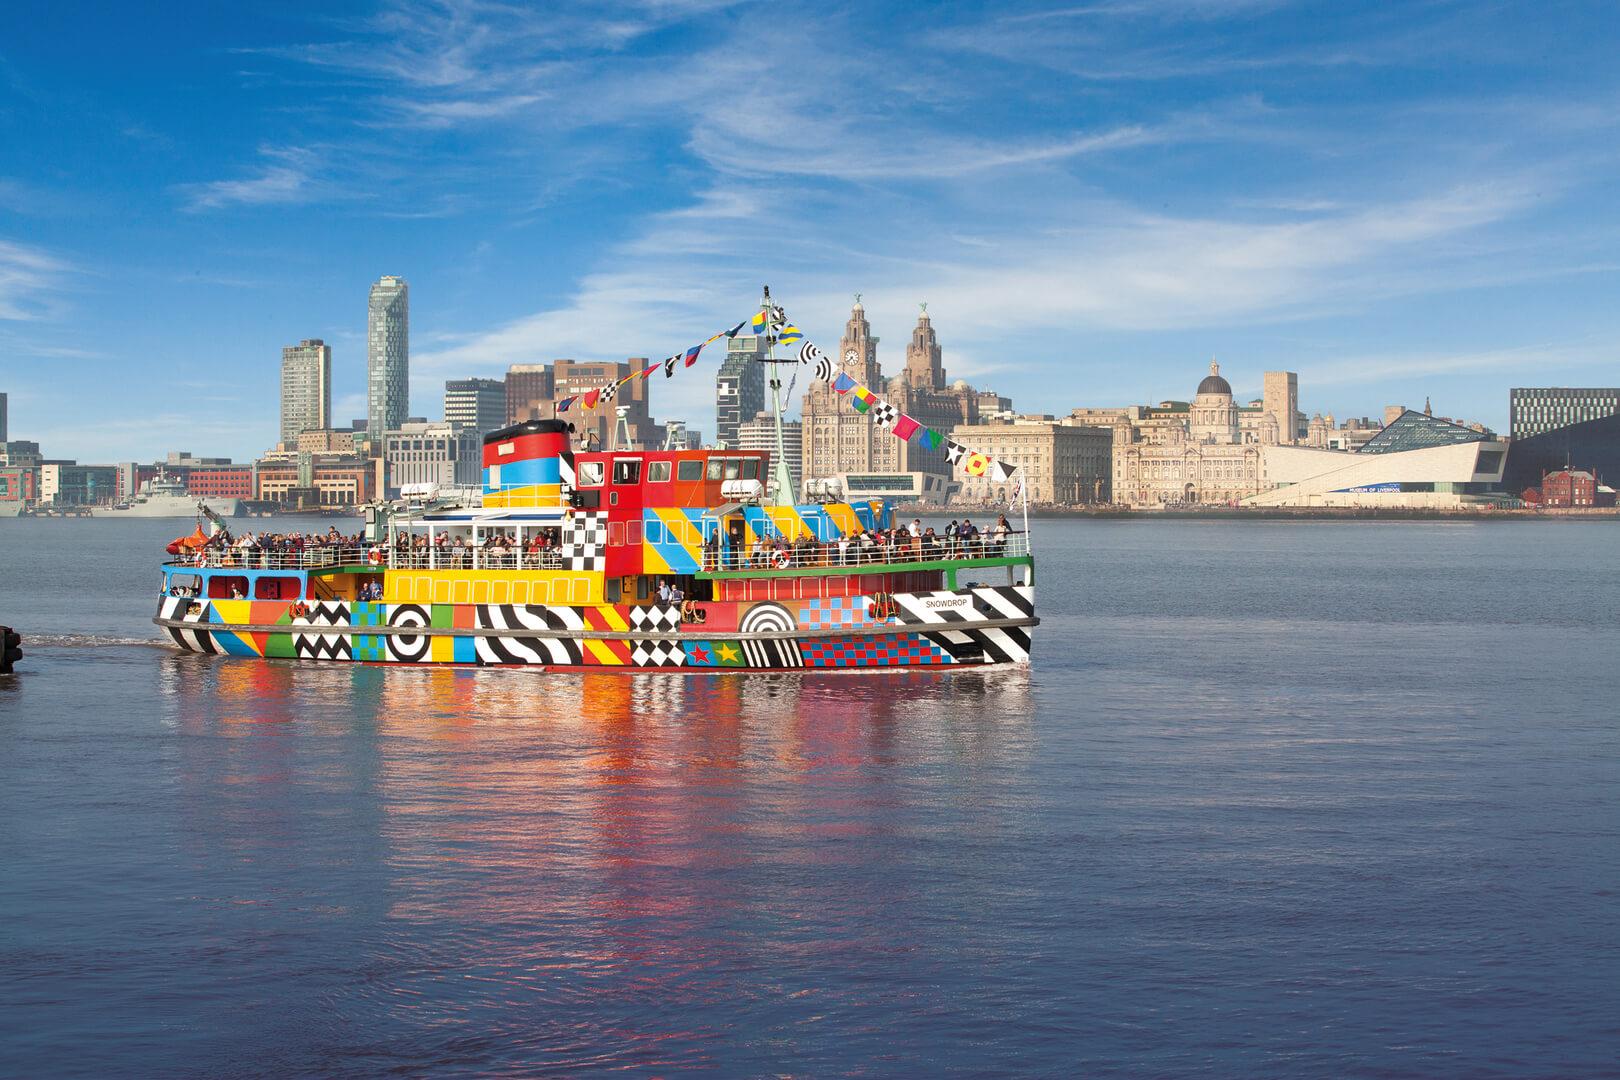 Dazzle Ferry on the River Mersey